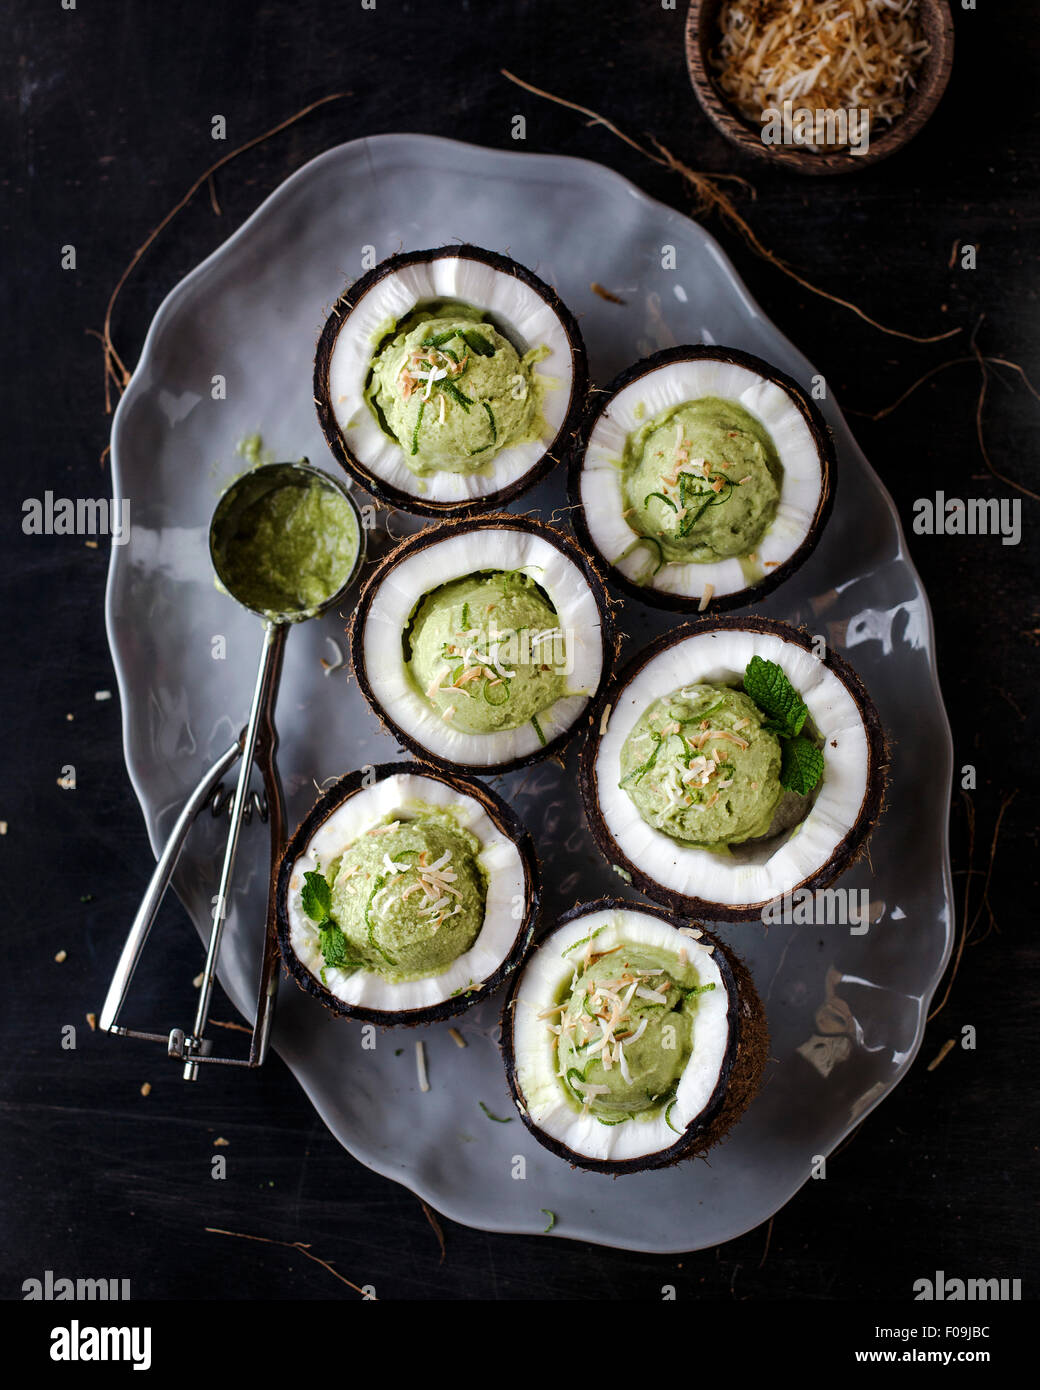 Coconut and Avocado Ice Cream served in freshly cracked coconut bowls in a dark background. - Stock Image